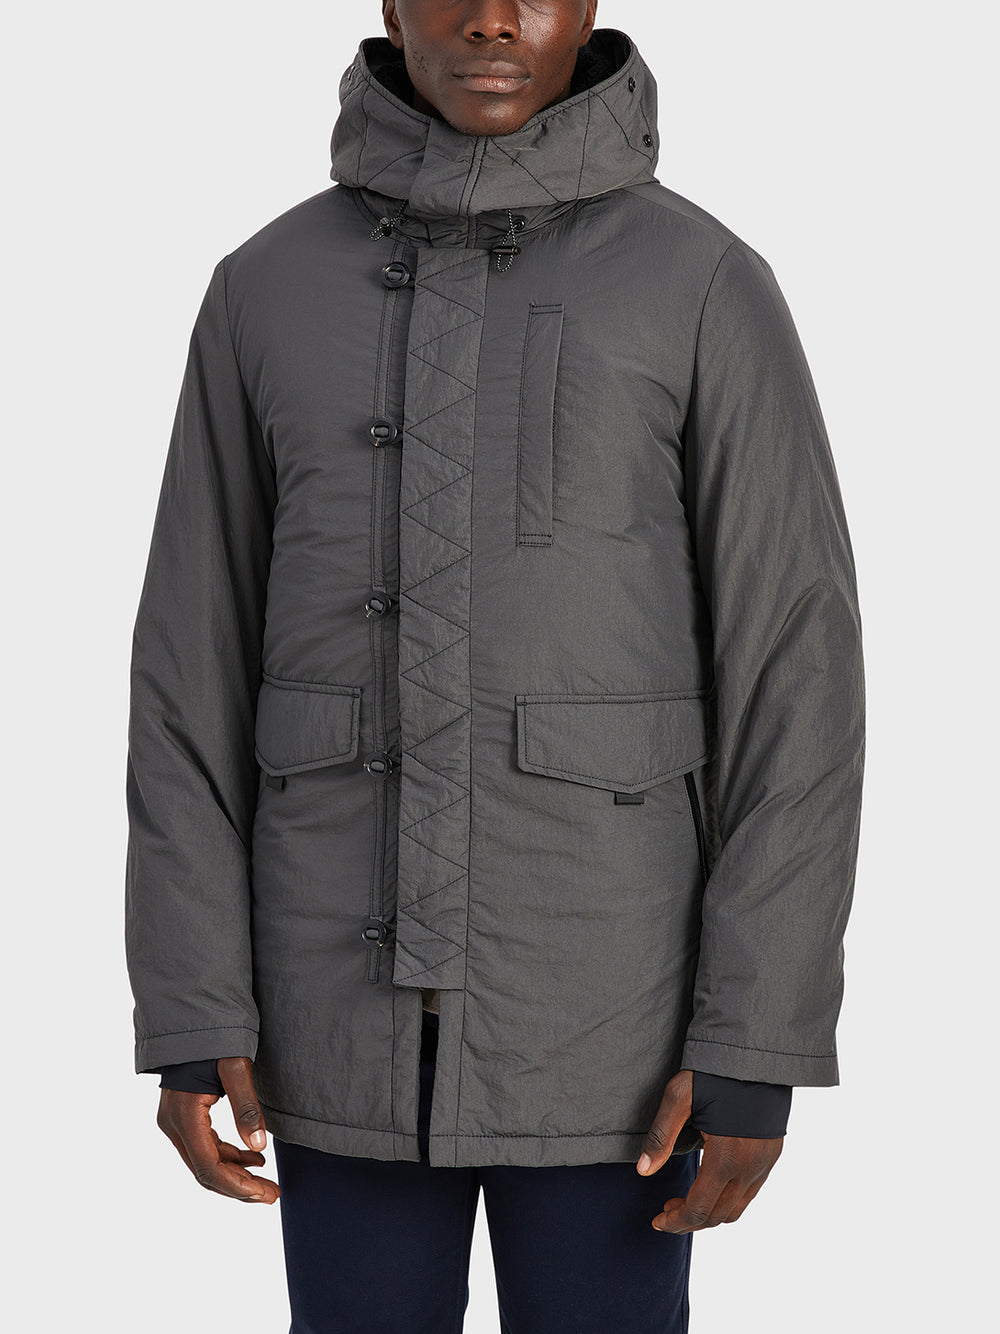 black friday deals ONS Clothing Men's jacket in DK GREY